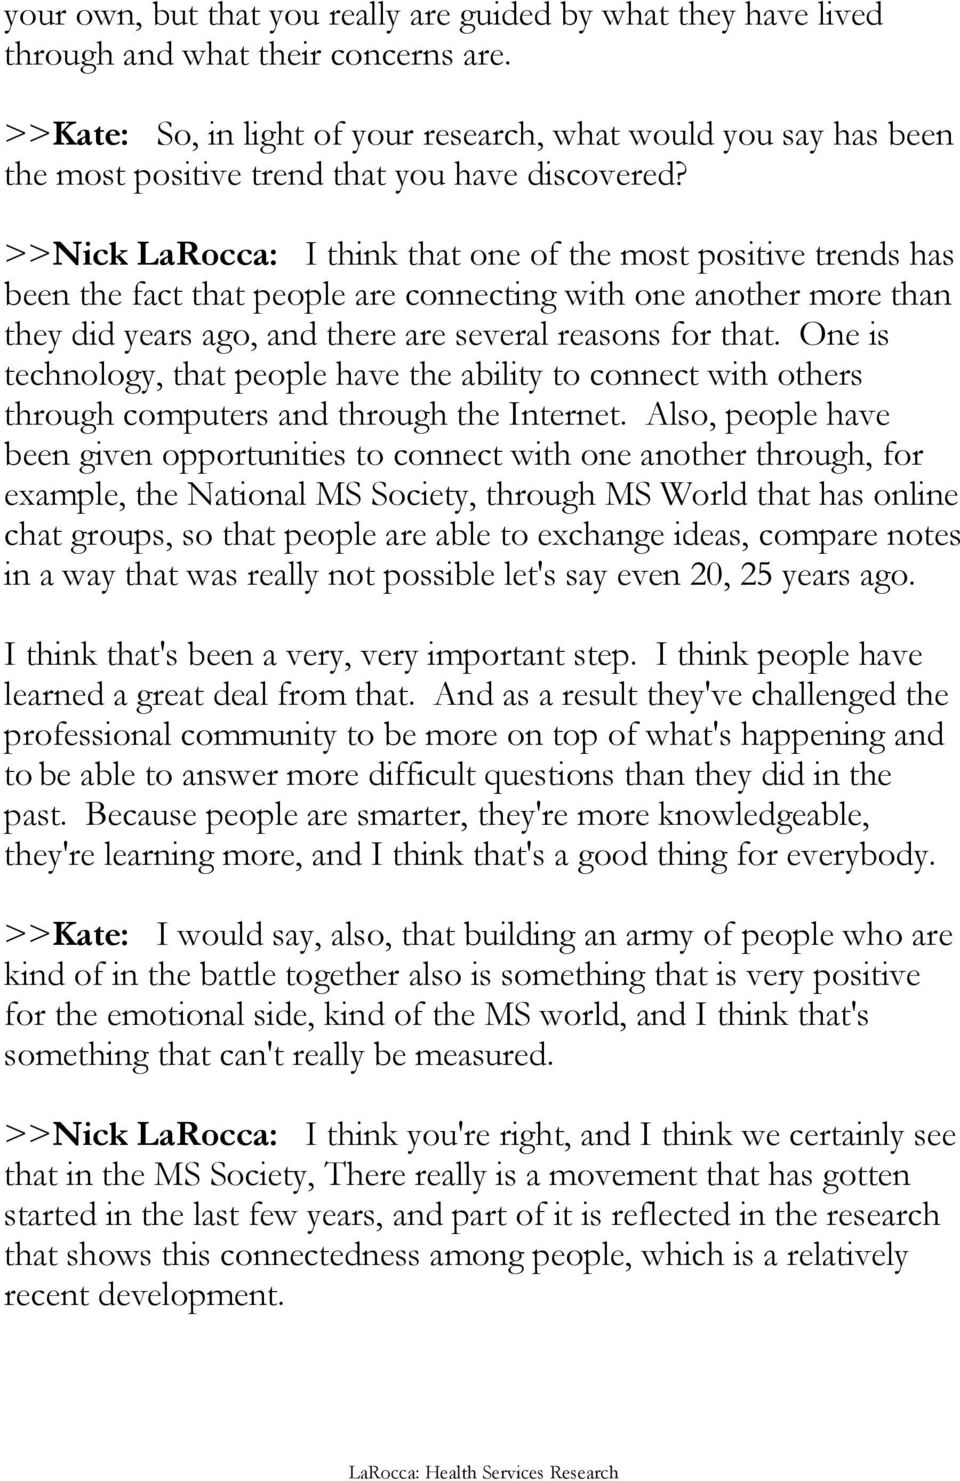 >>Nick LaRocca: I think that one of the most positive trends has been the fact that people are connecting with one another more than they did years ago, and there are several reasons for that.